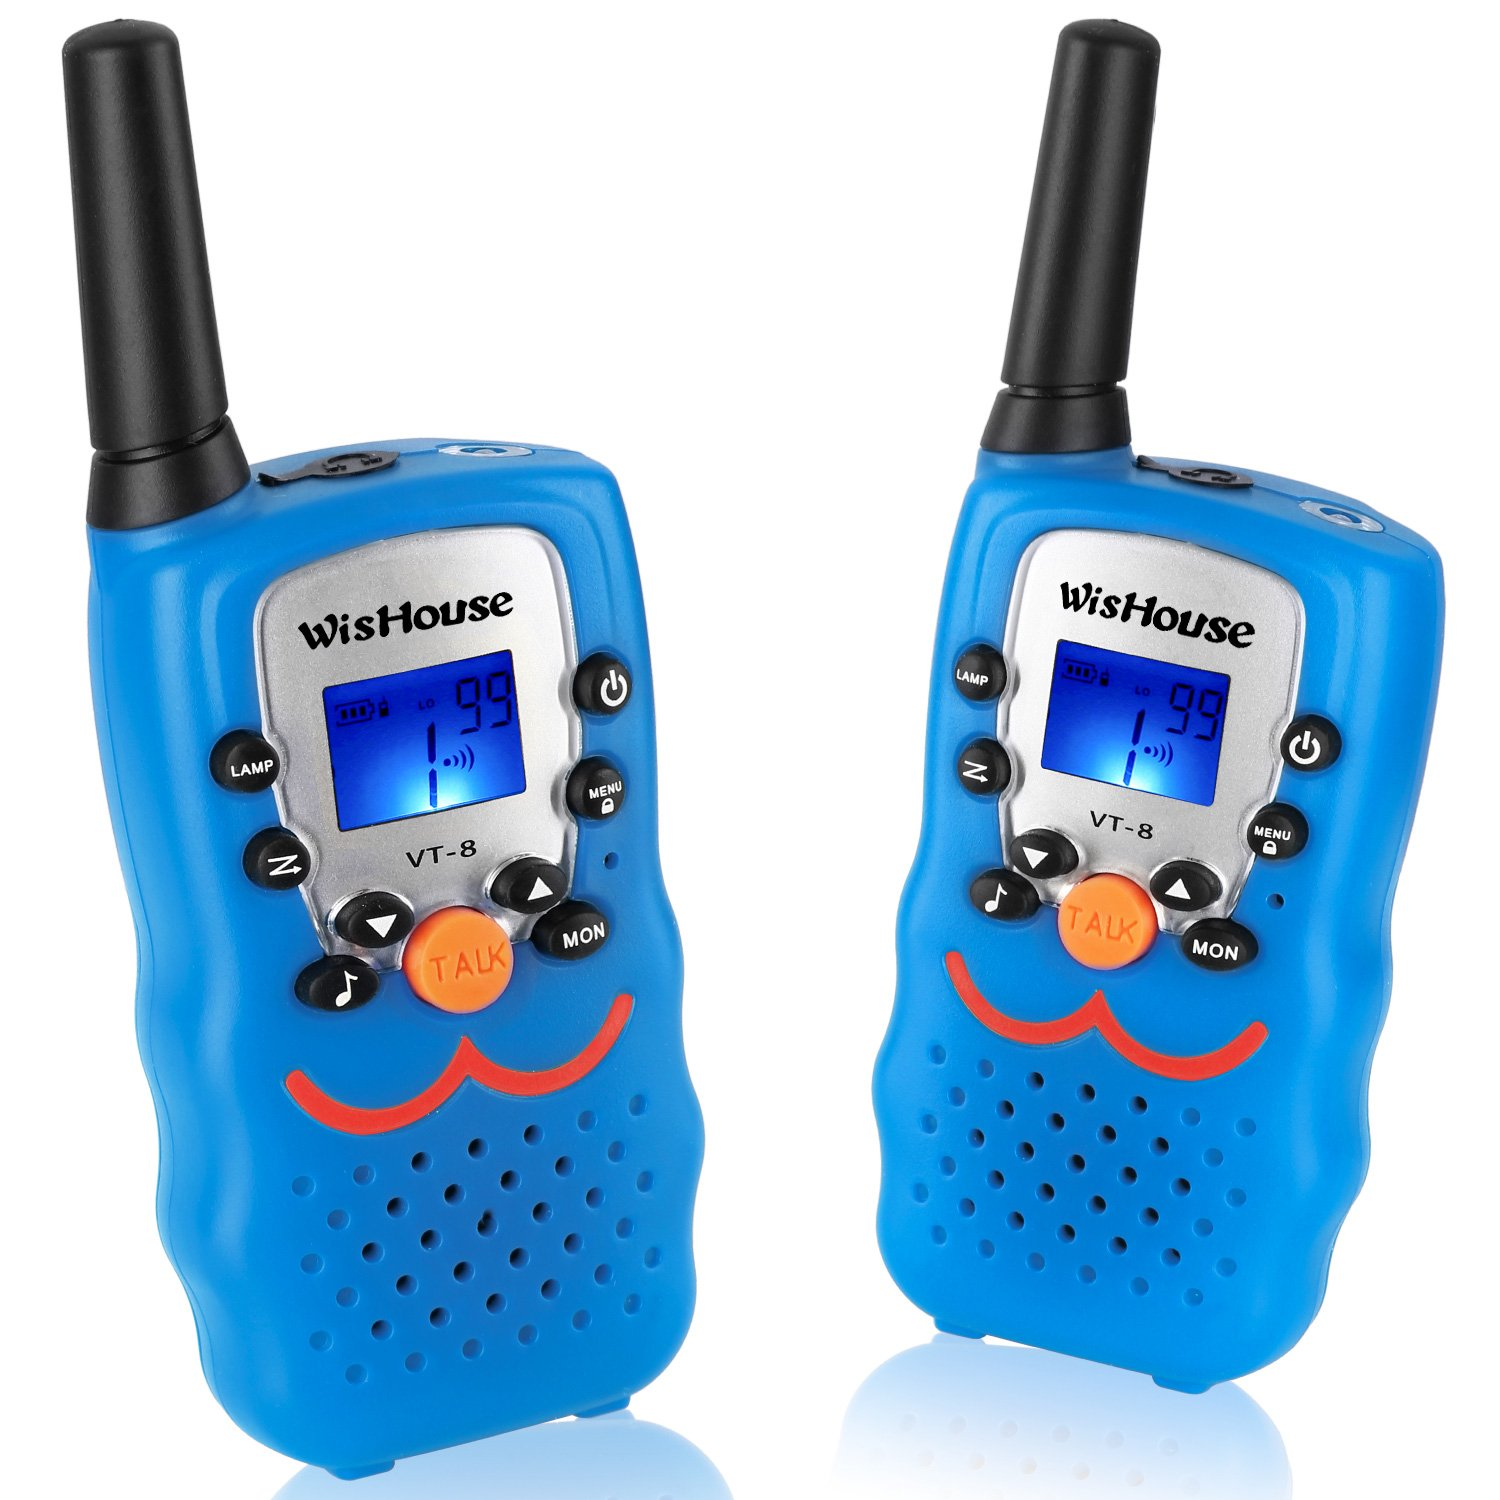 Wishouse Walky talky kids, Best Toys Walkie Radios 3 Miles Long range£¬22 Channels Handheld FRS GMRS Two way radios Hunting Hiking Camping Picnic Outdoors(VT-8 Blue,1 Pair)